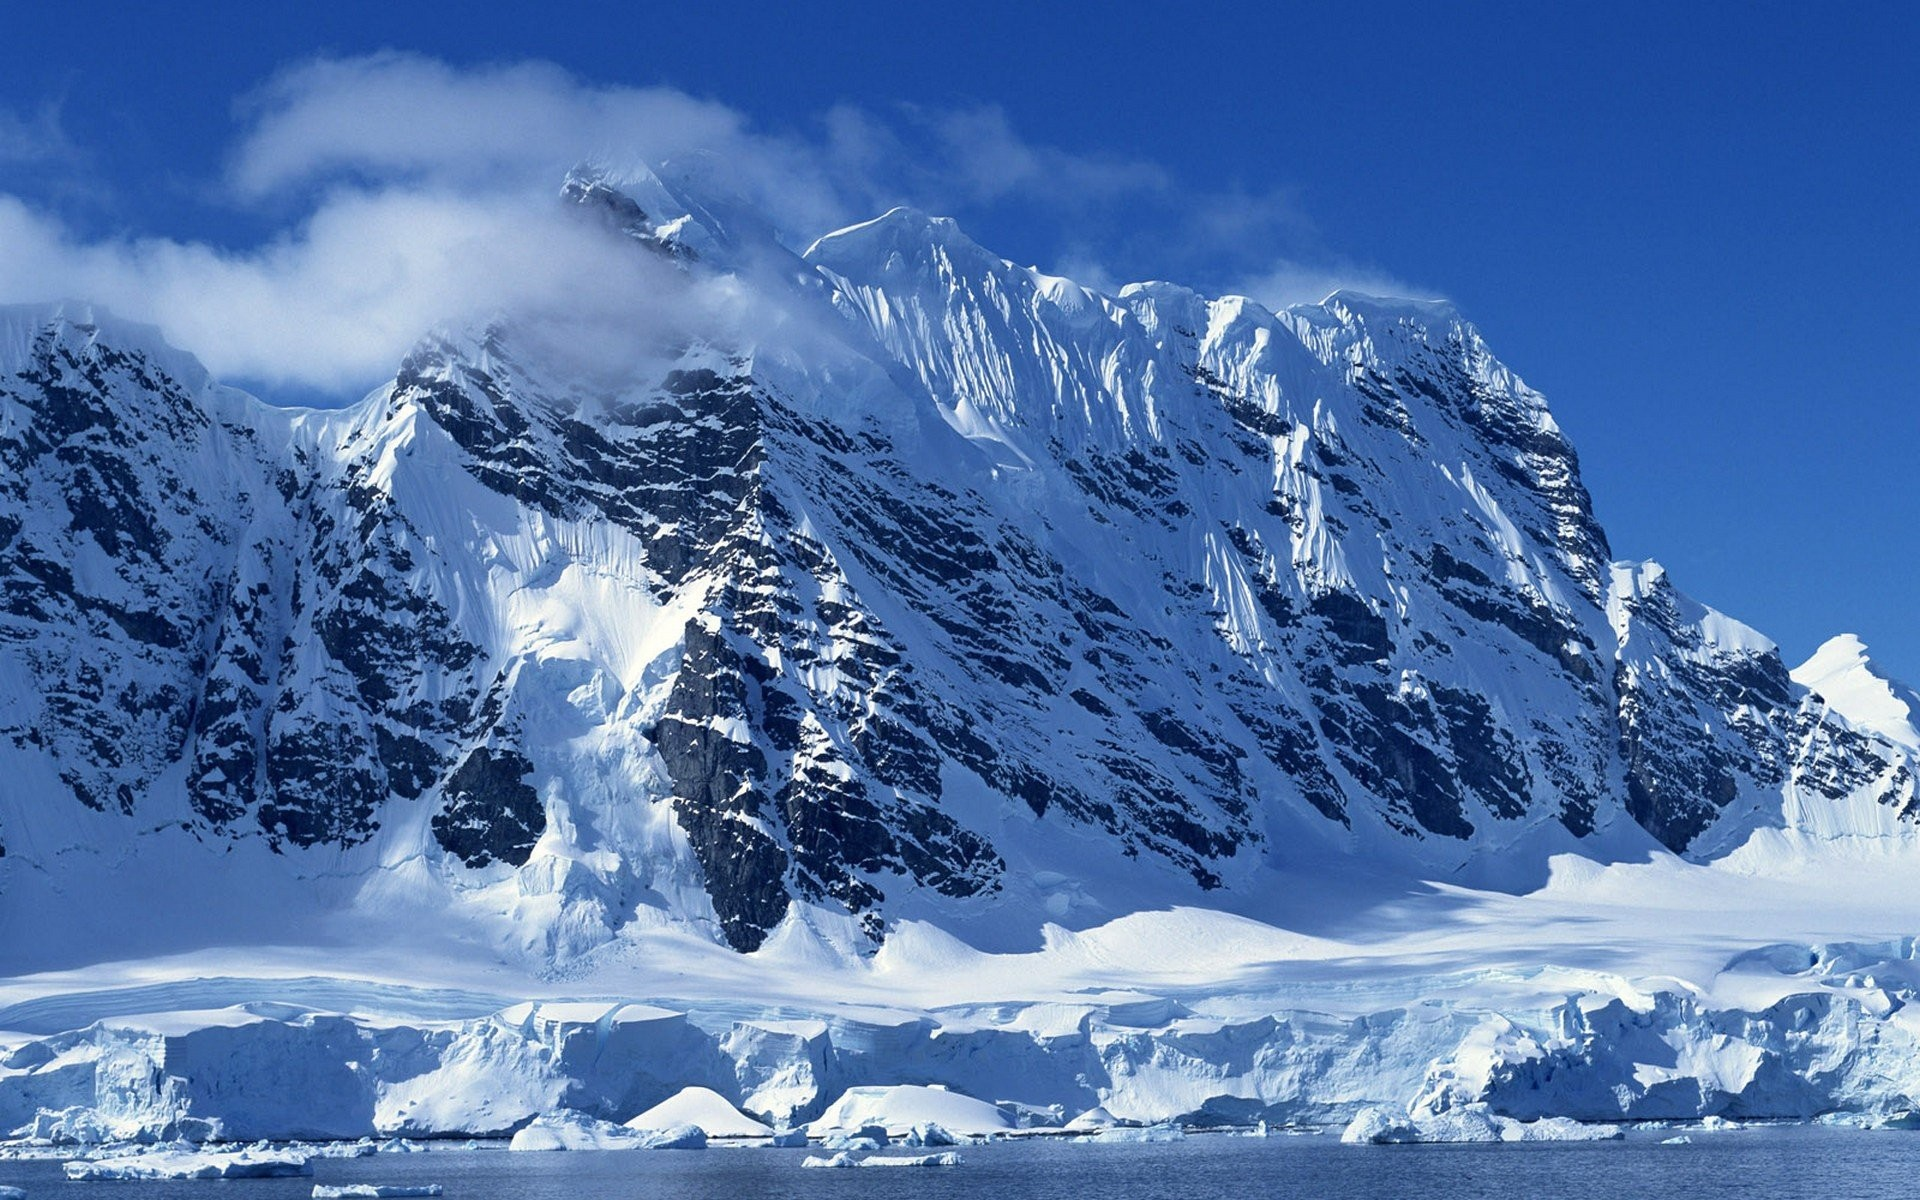 Snowy Background With Mountain: Mountain Background Images ·① WallpaperTag